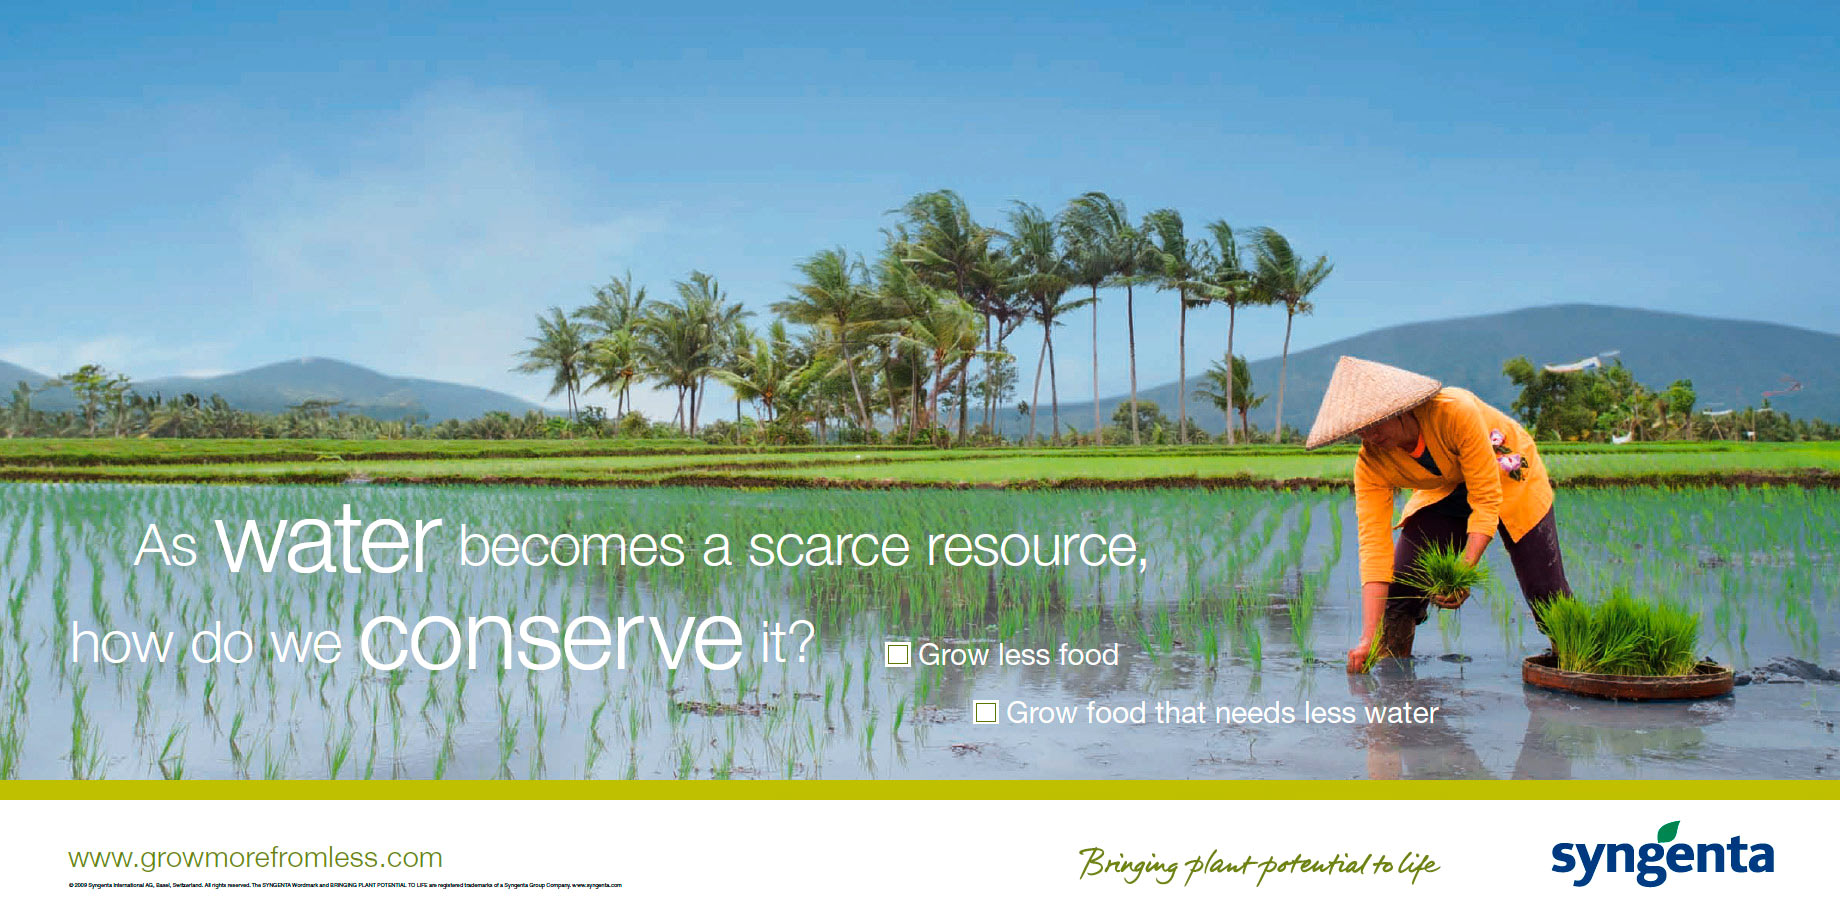 Syngenta-advertising-campaign-2